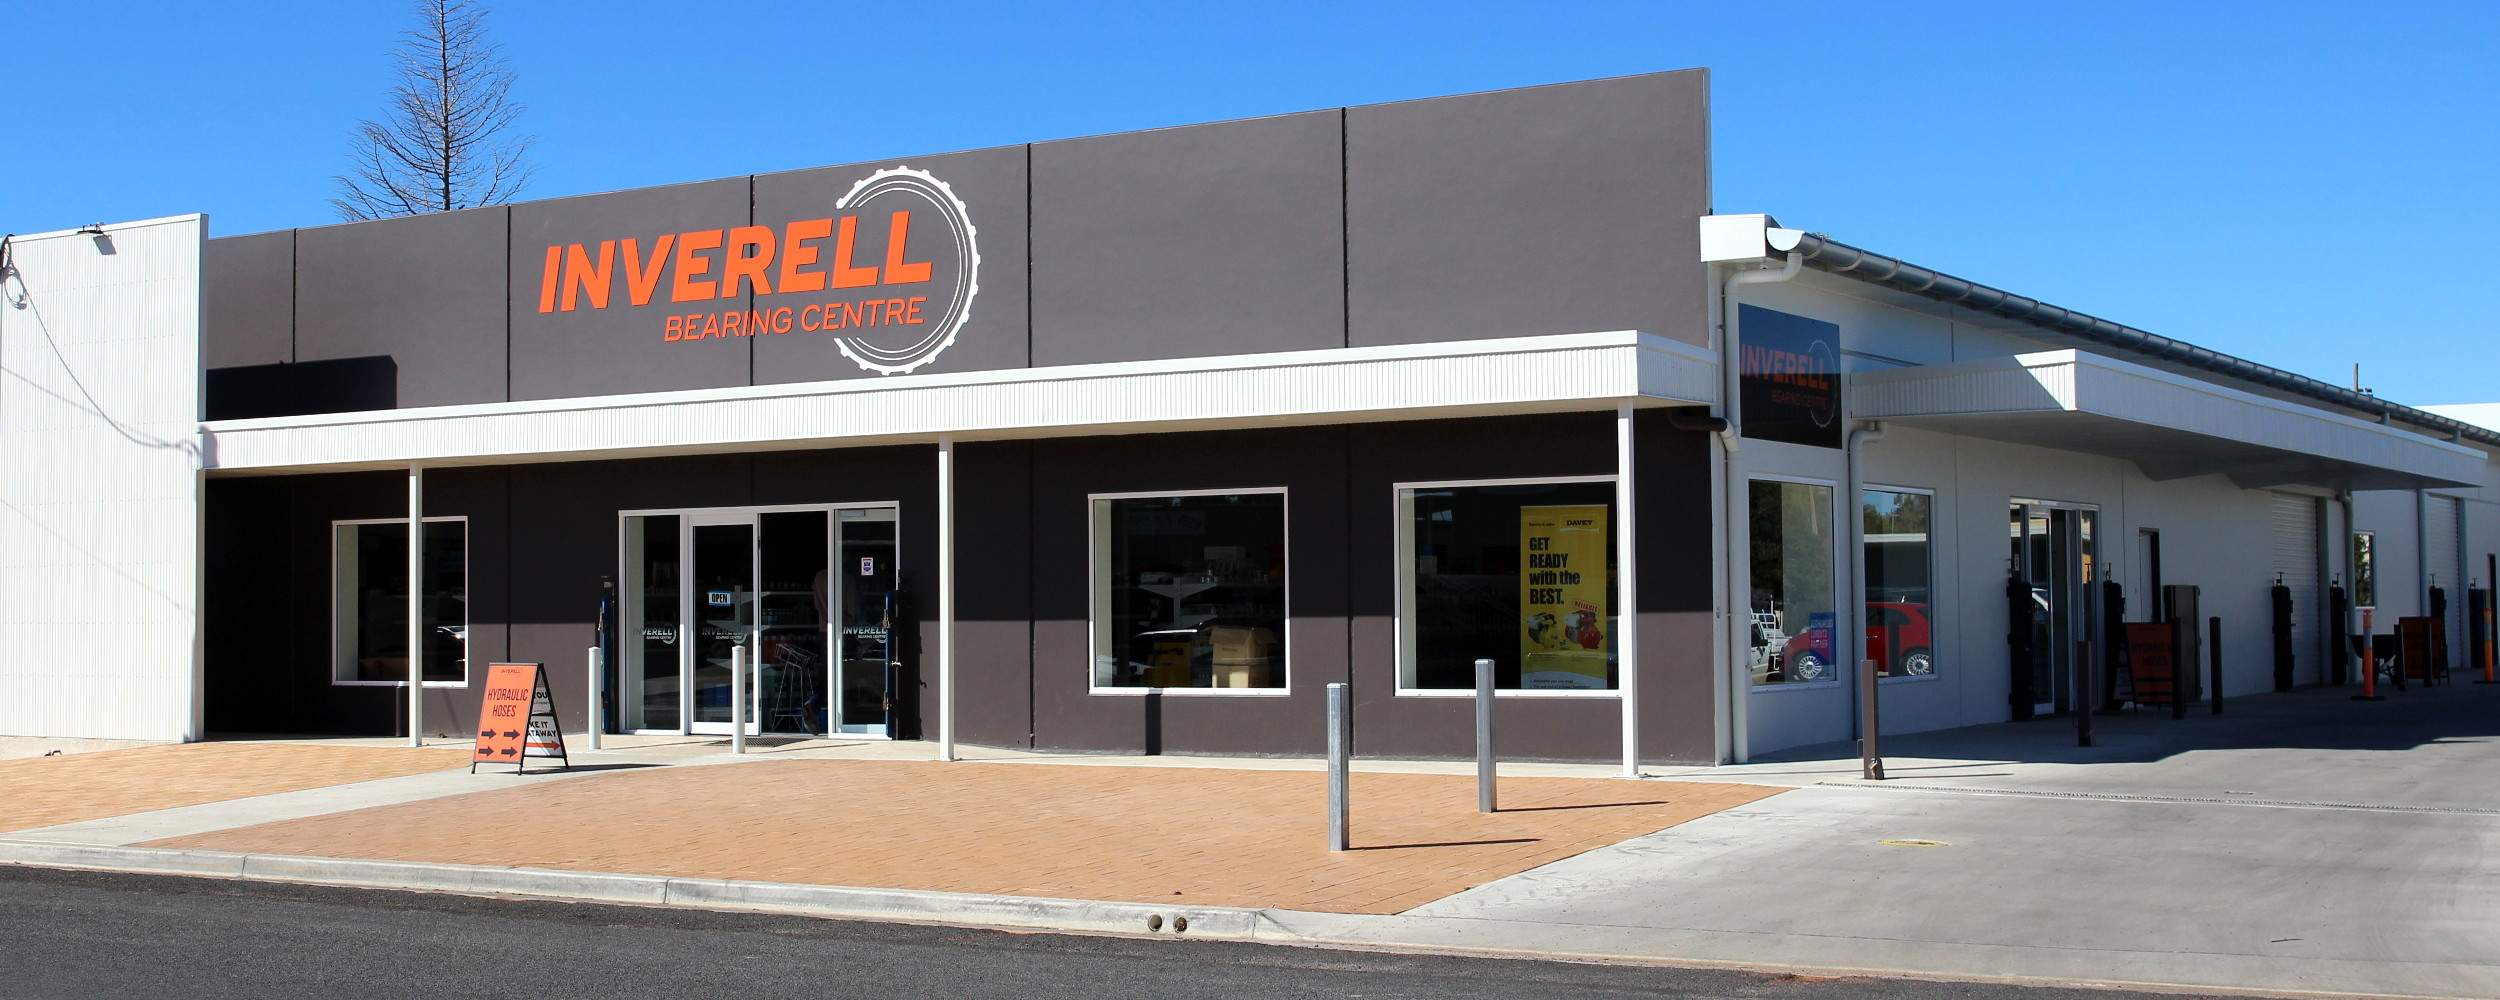 inverell bearing centre